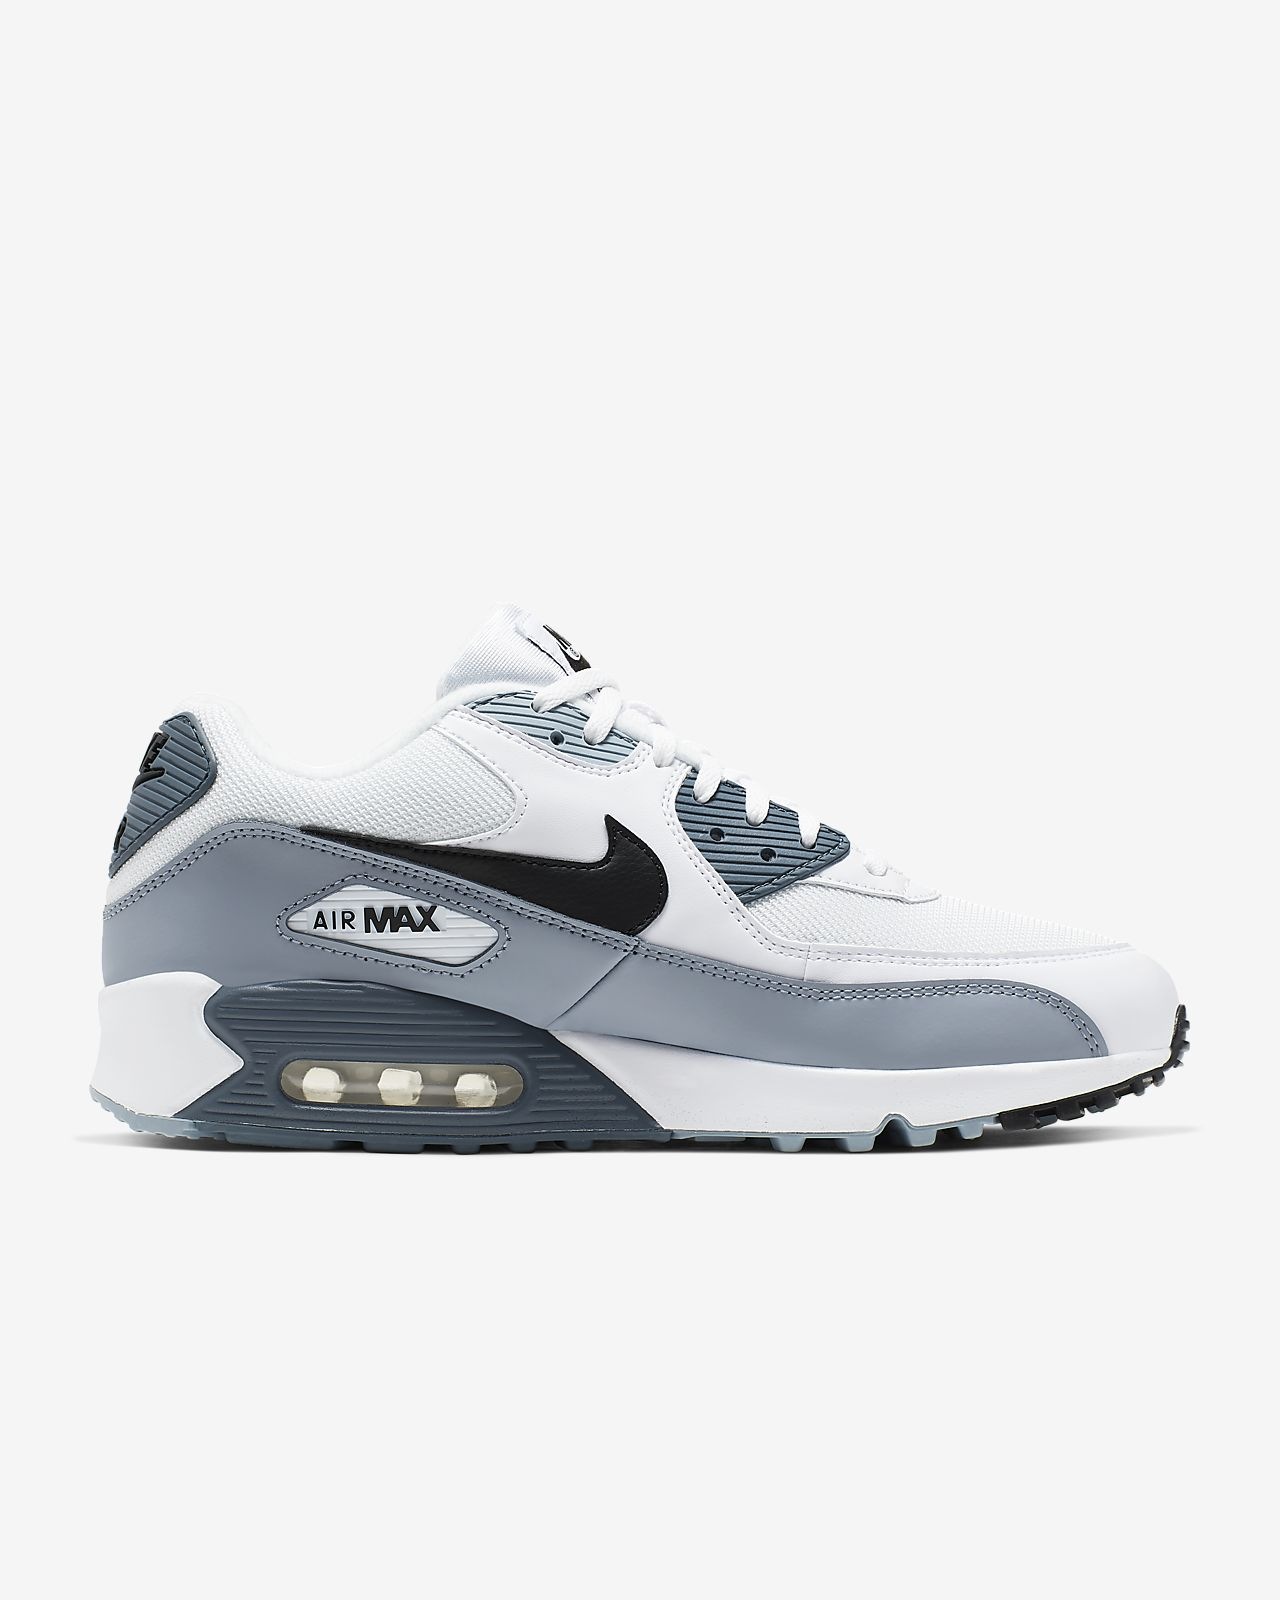 separation shoes 668e2 9bb6d ... Nike Air Max 90 Essential Men s Shoe